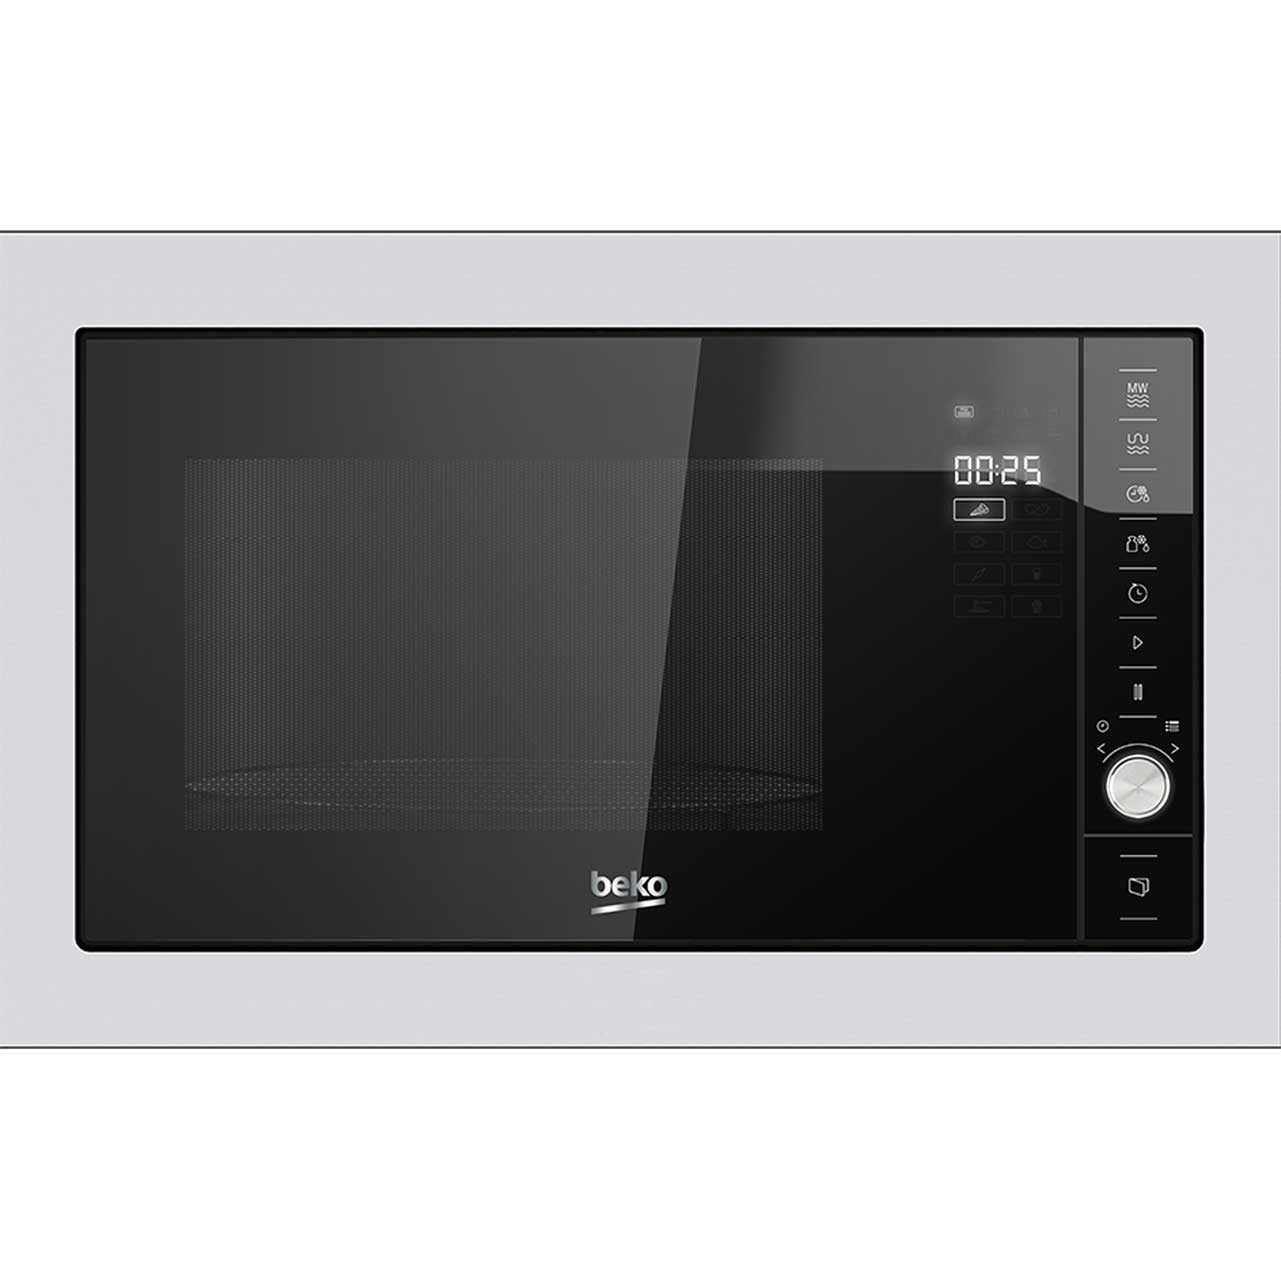 Beko MGB25332BG Integrated Microwave Oven in Black  Stainless Steel